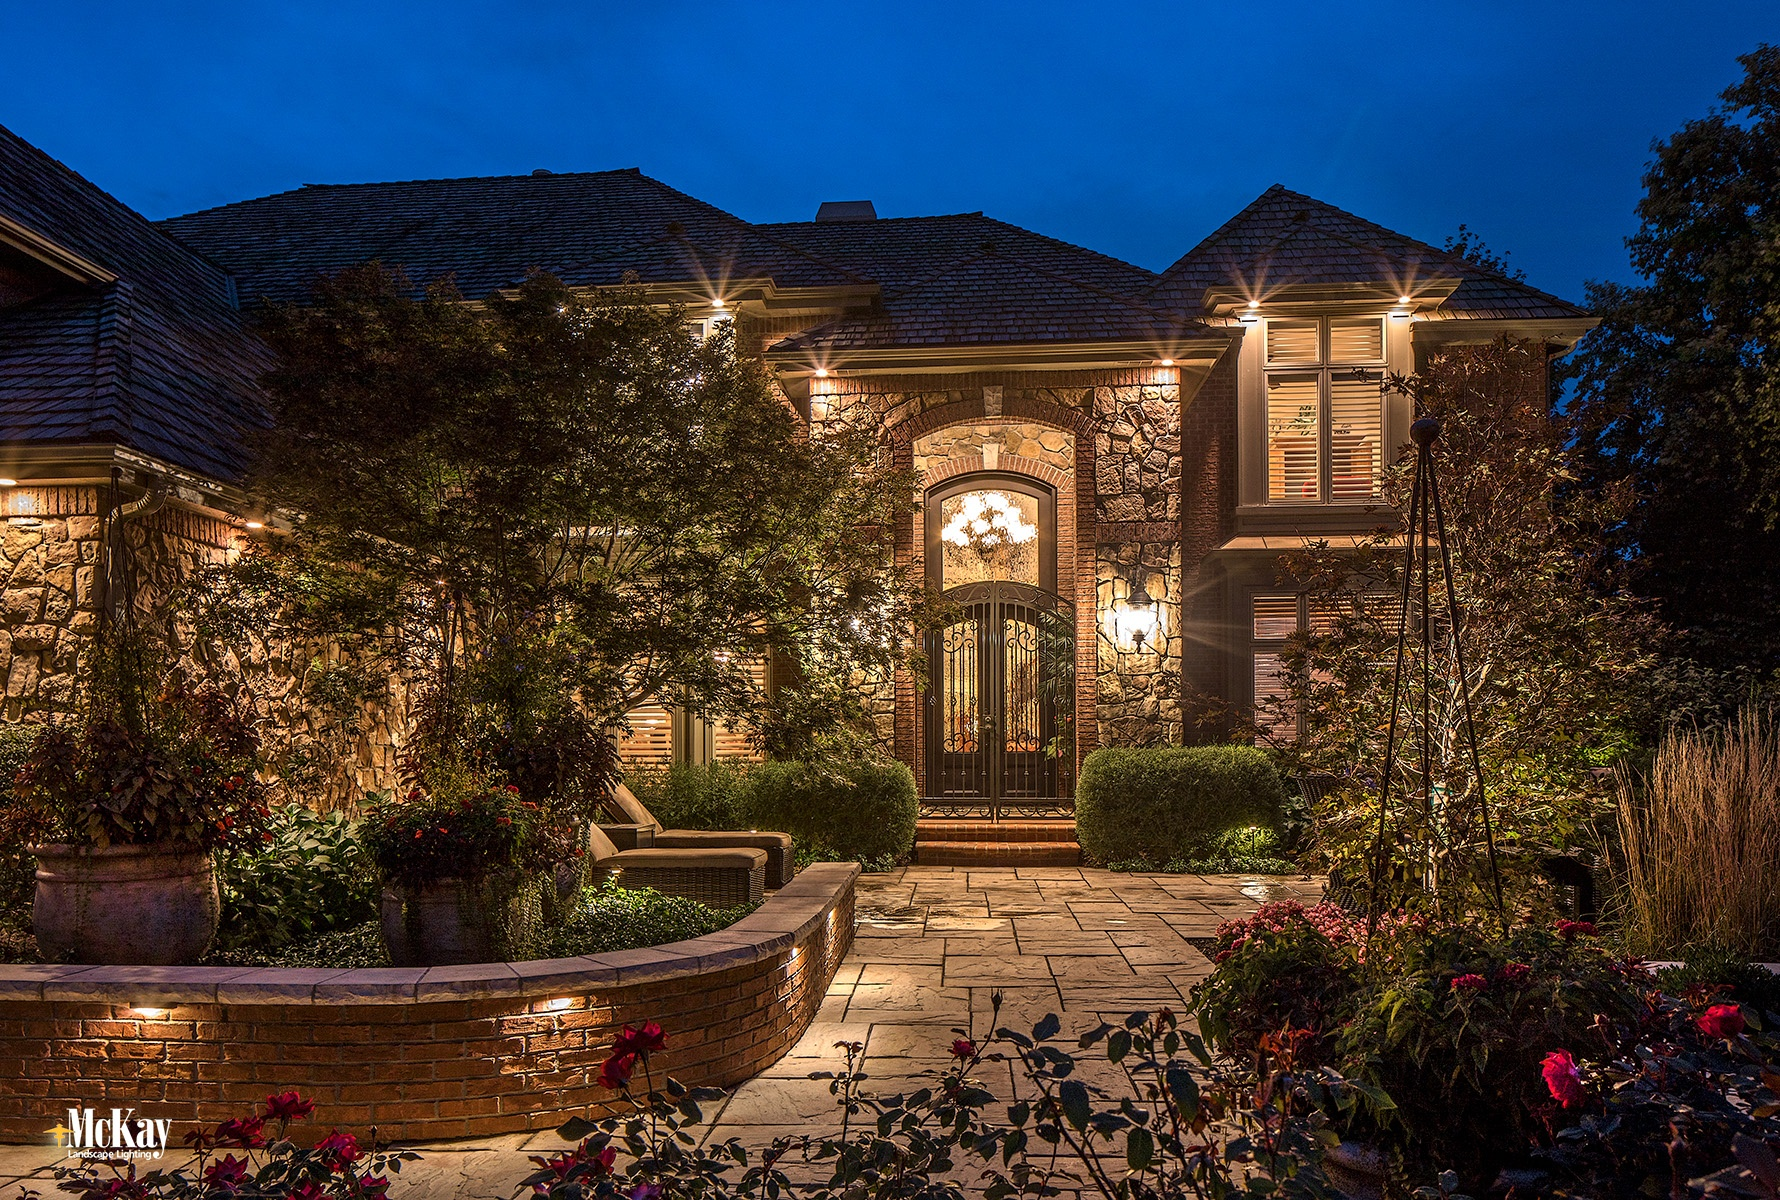 Good Whatu0027s The Best Material For Outdoor Lighting Fixtures? Learn More About  The Different Types And